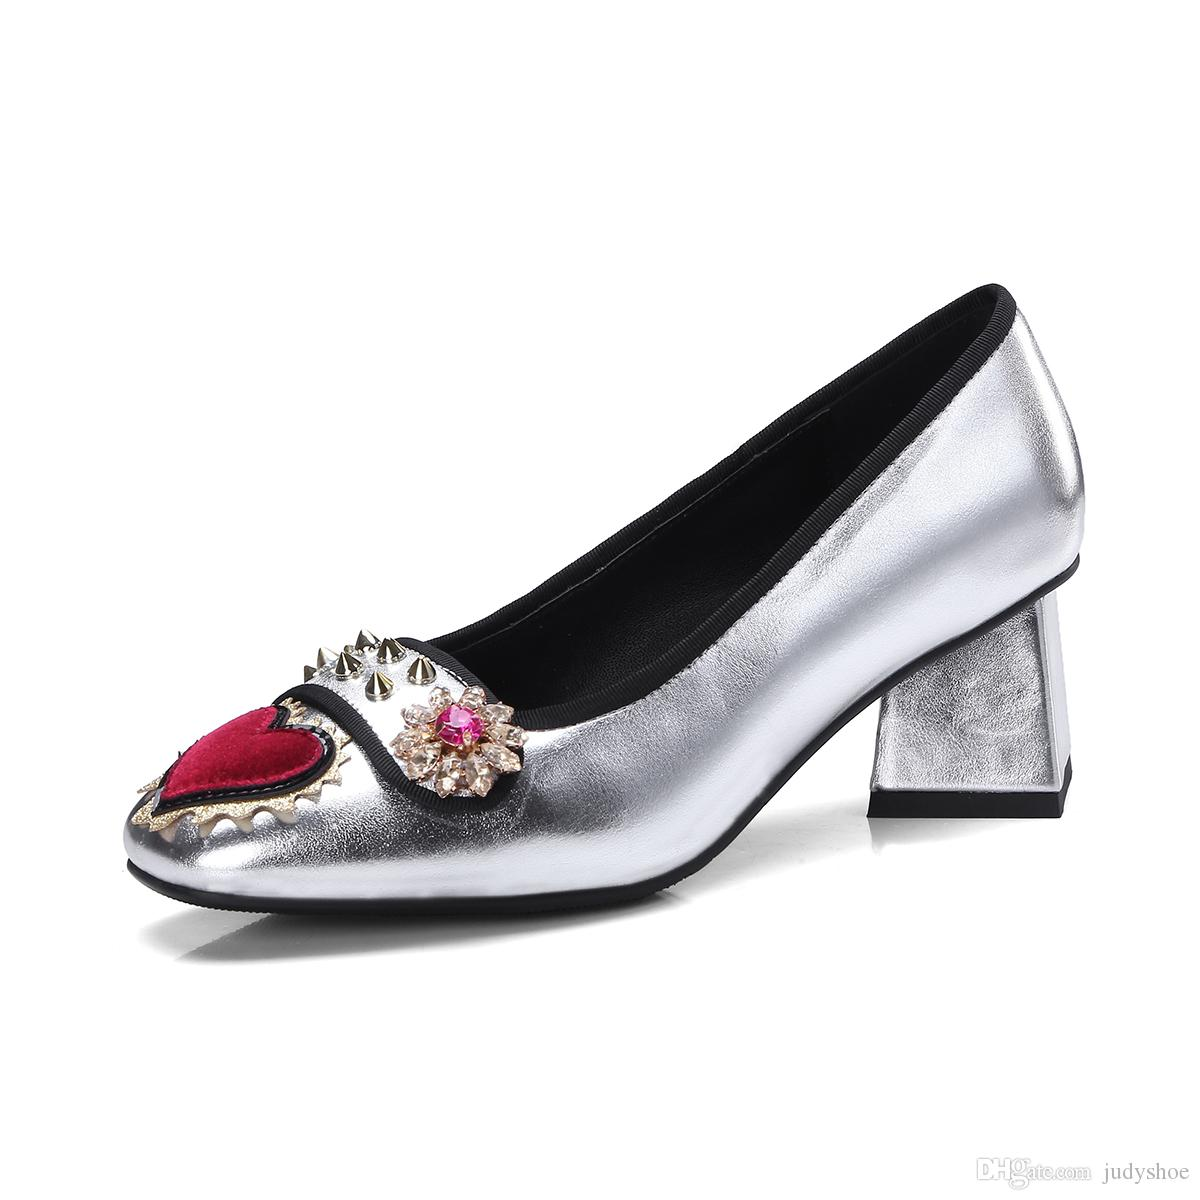 6c42cfa9b8e Spring Shoes Women Silver Blue Crystal Rhinestone Med Heels Spicked Rivets  Studded Love Heart Runway Pumps Zapatos Mujer Prom Shoes Hiking Shoes From  ...